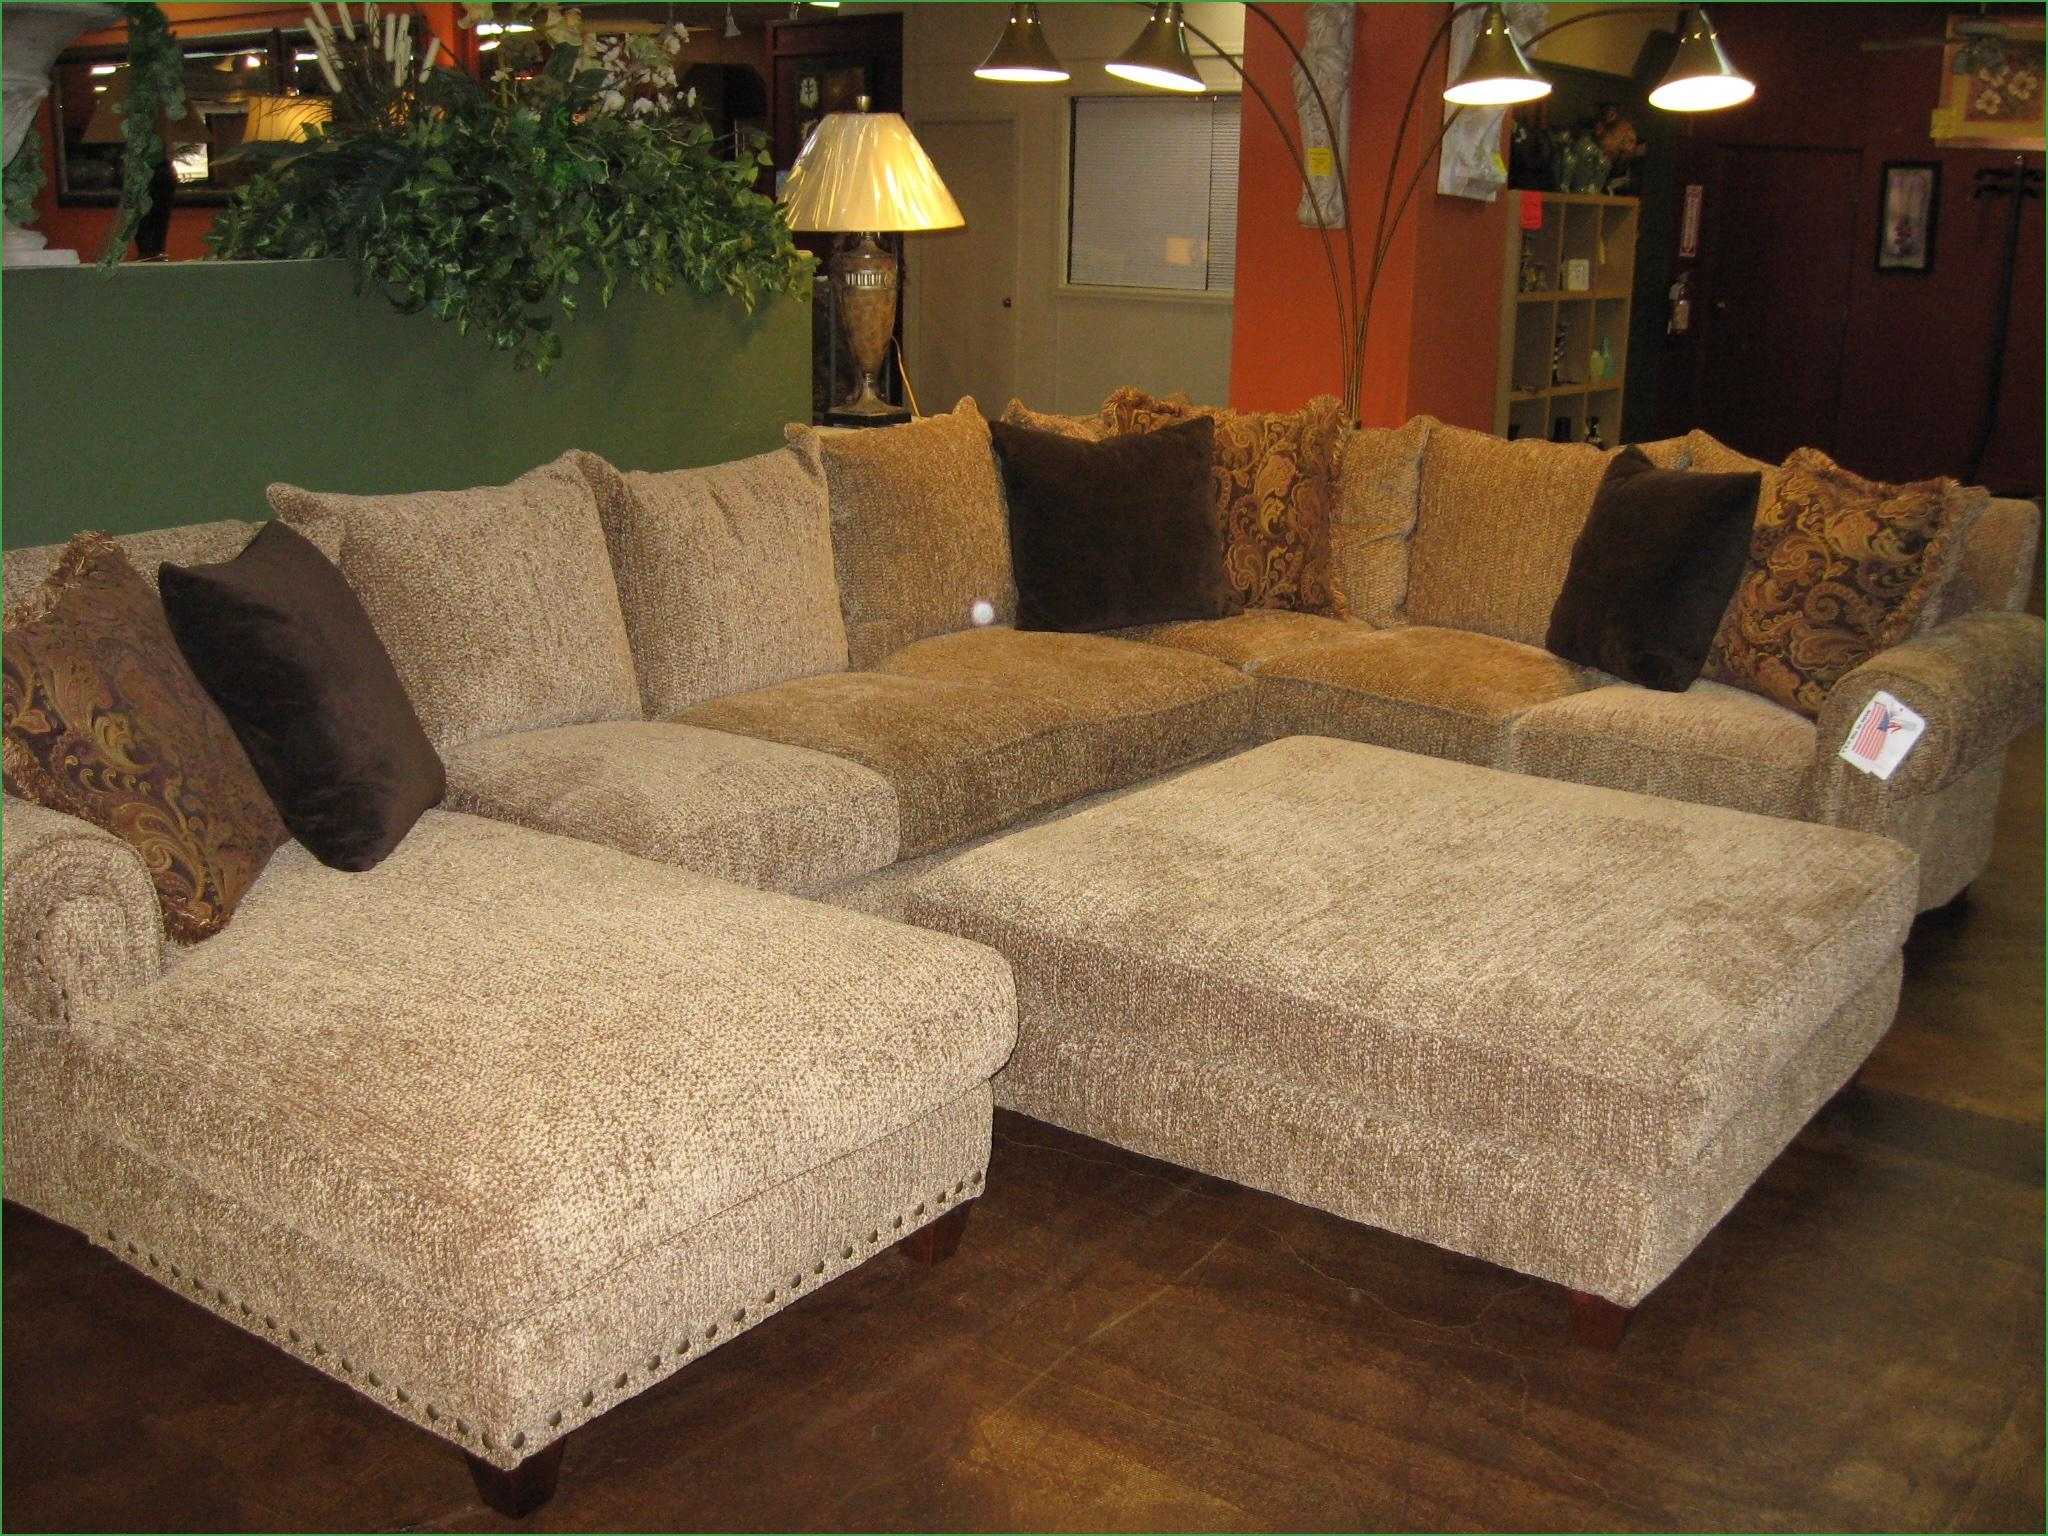 Sofas Center : Large Sectional Sofa With Ottoman Sensational Inside Sectional Sofa With Large Ottoman (View 3 of 20)